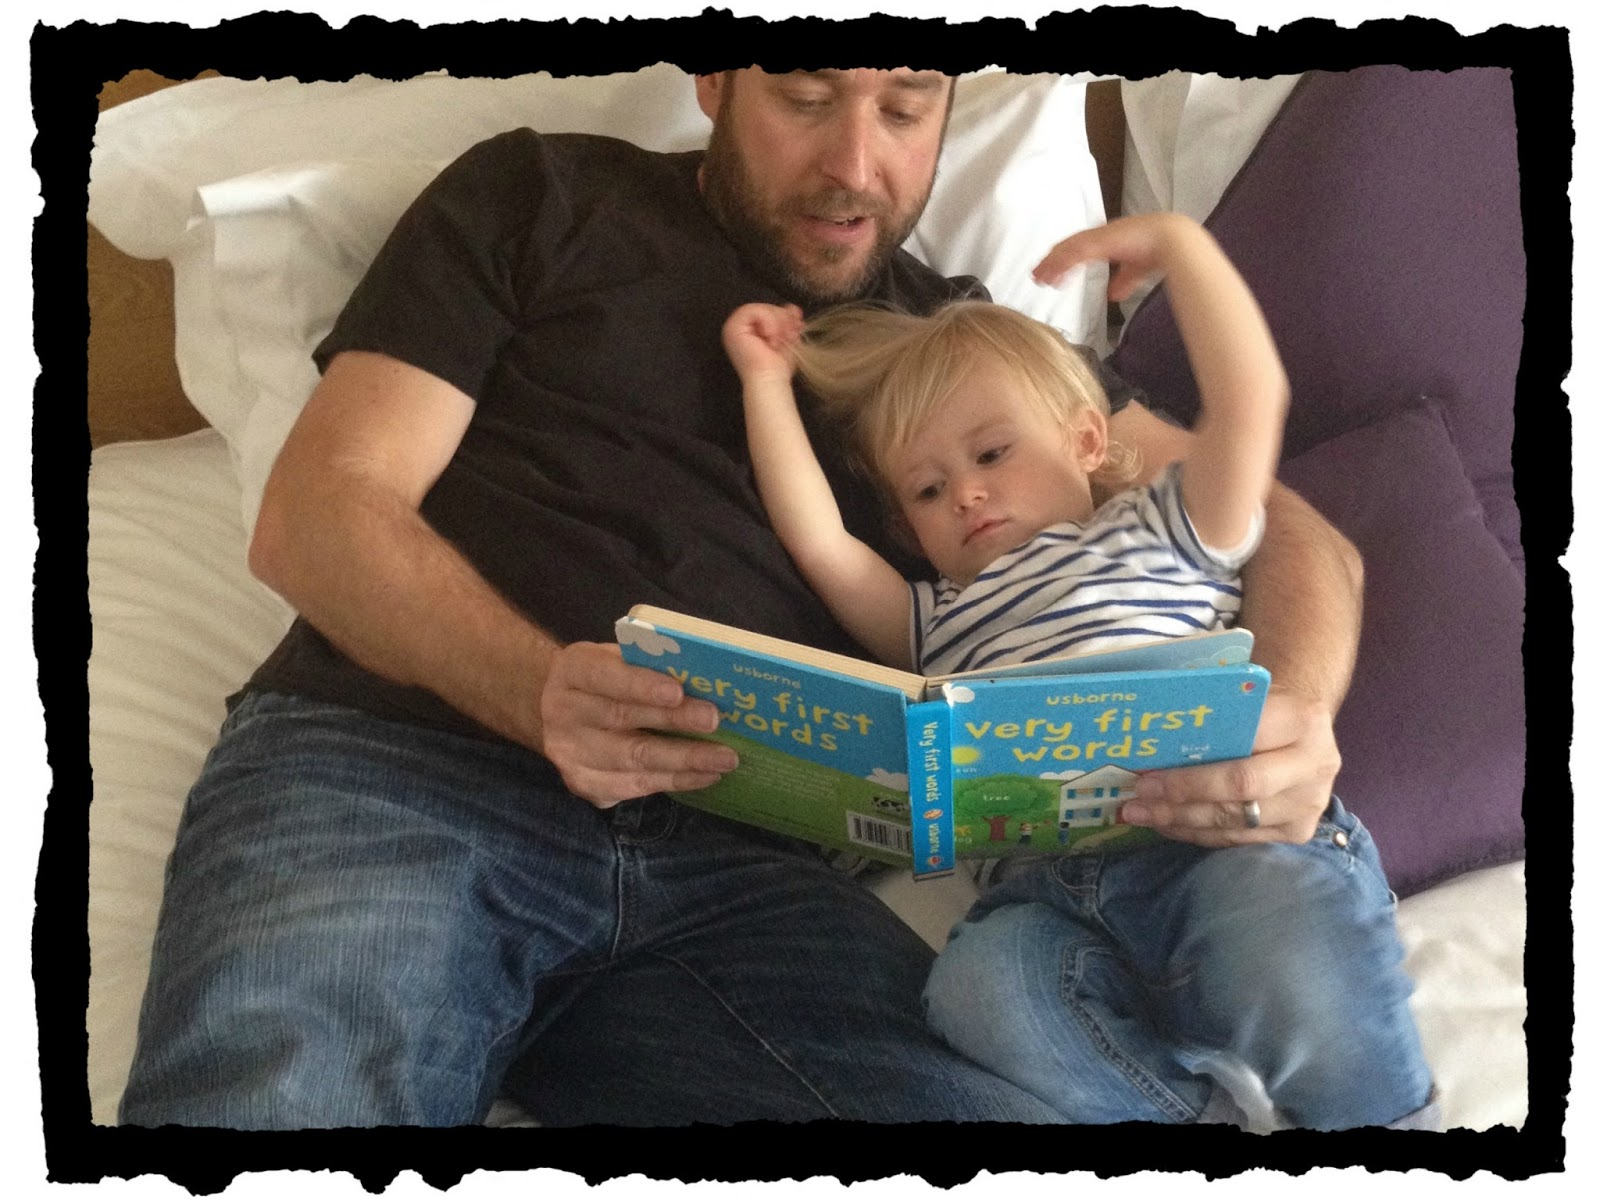 10 Fab Father's Day Books | Father day | books for daddys | dads books | gift ideas for fathers day | kids books for dads | fathers | dads |daddy } fathers day | gift |book club | books for kids | mamasVIB | blog | books | best books for dads | new dad | book ideas gifts